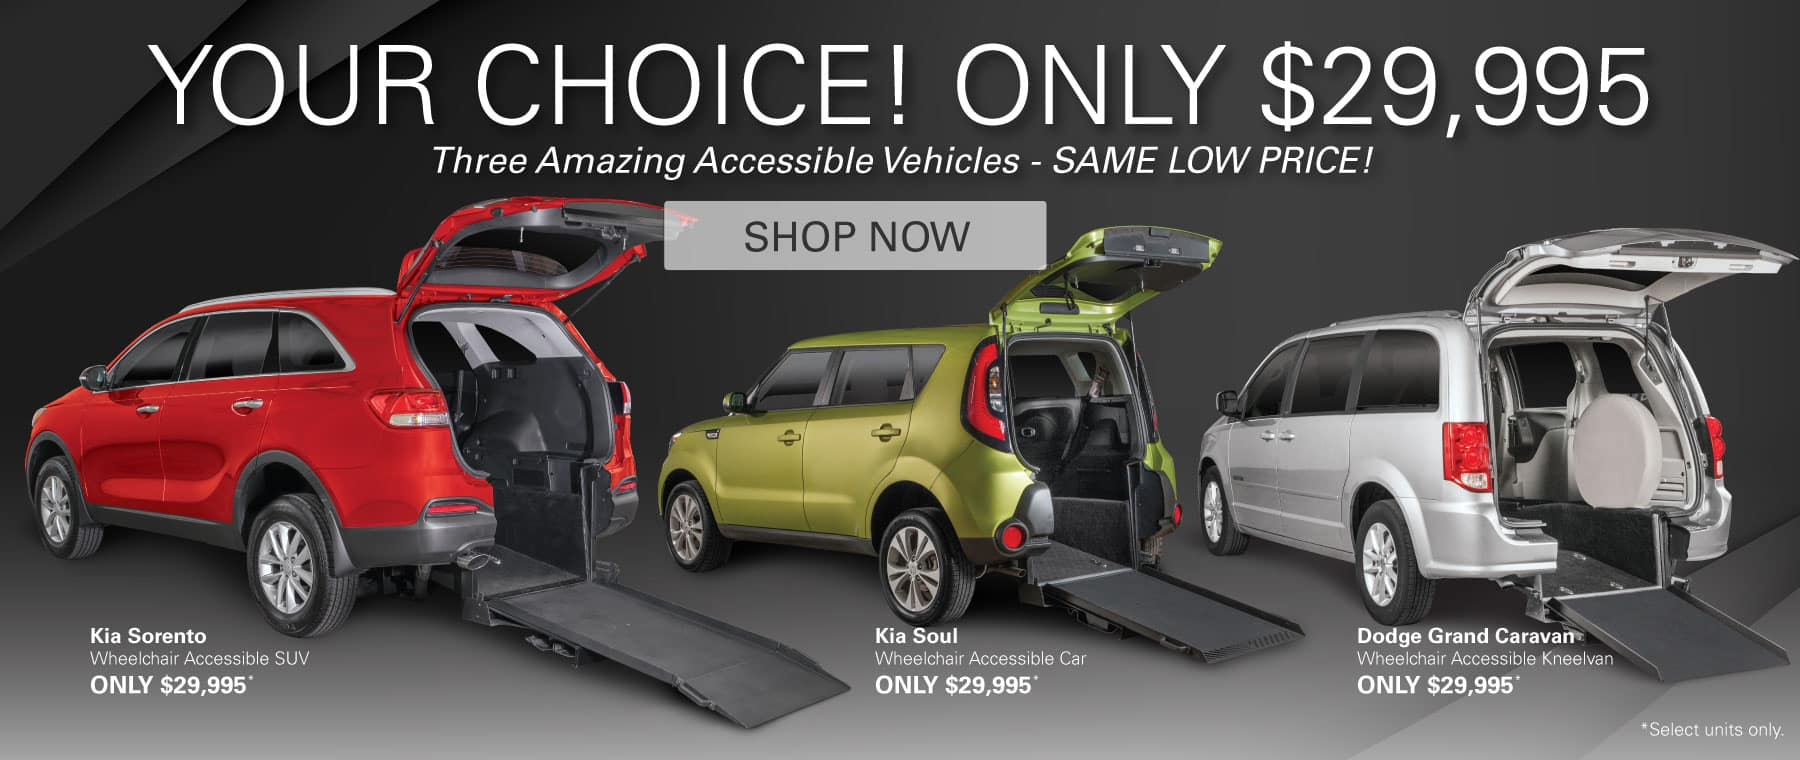 Your Choice - Only $29,995